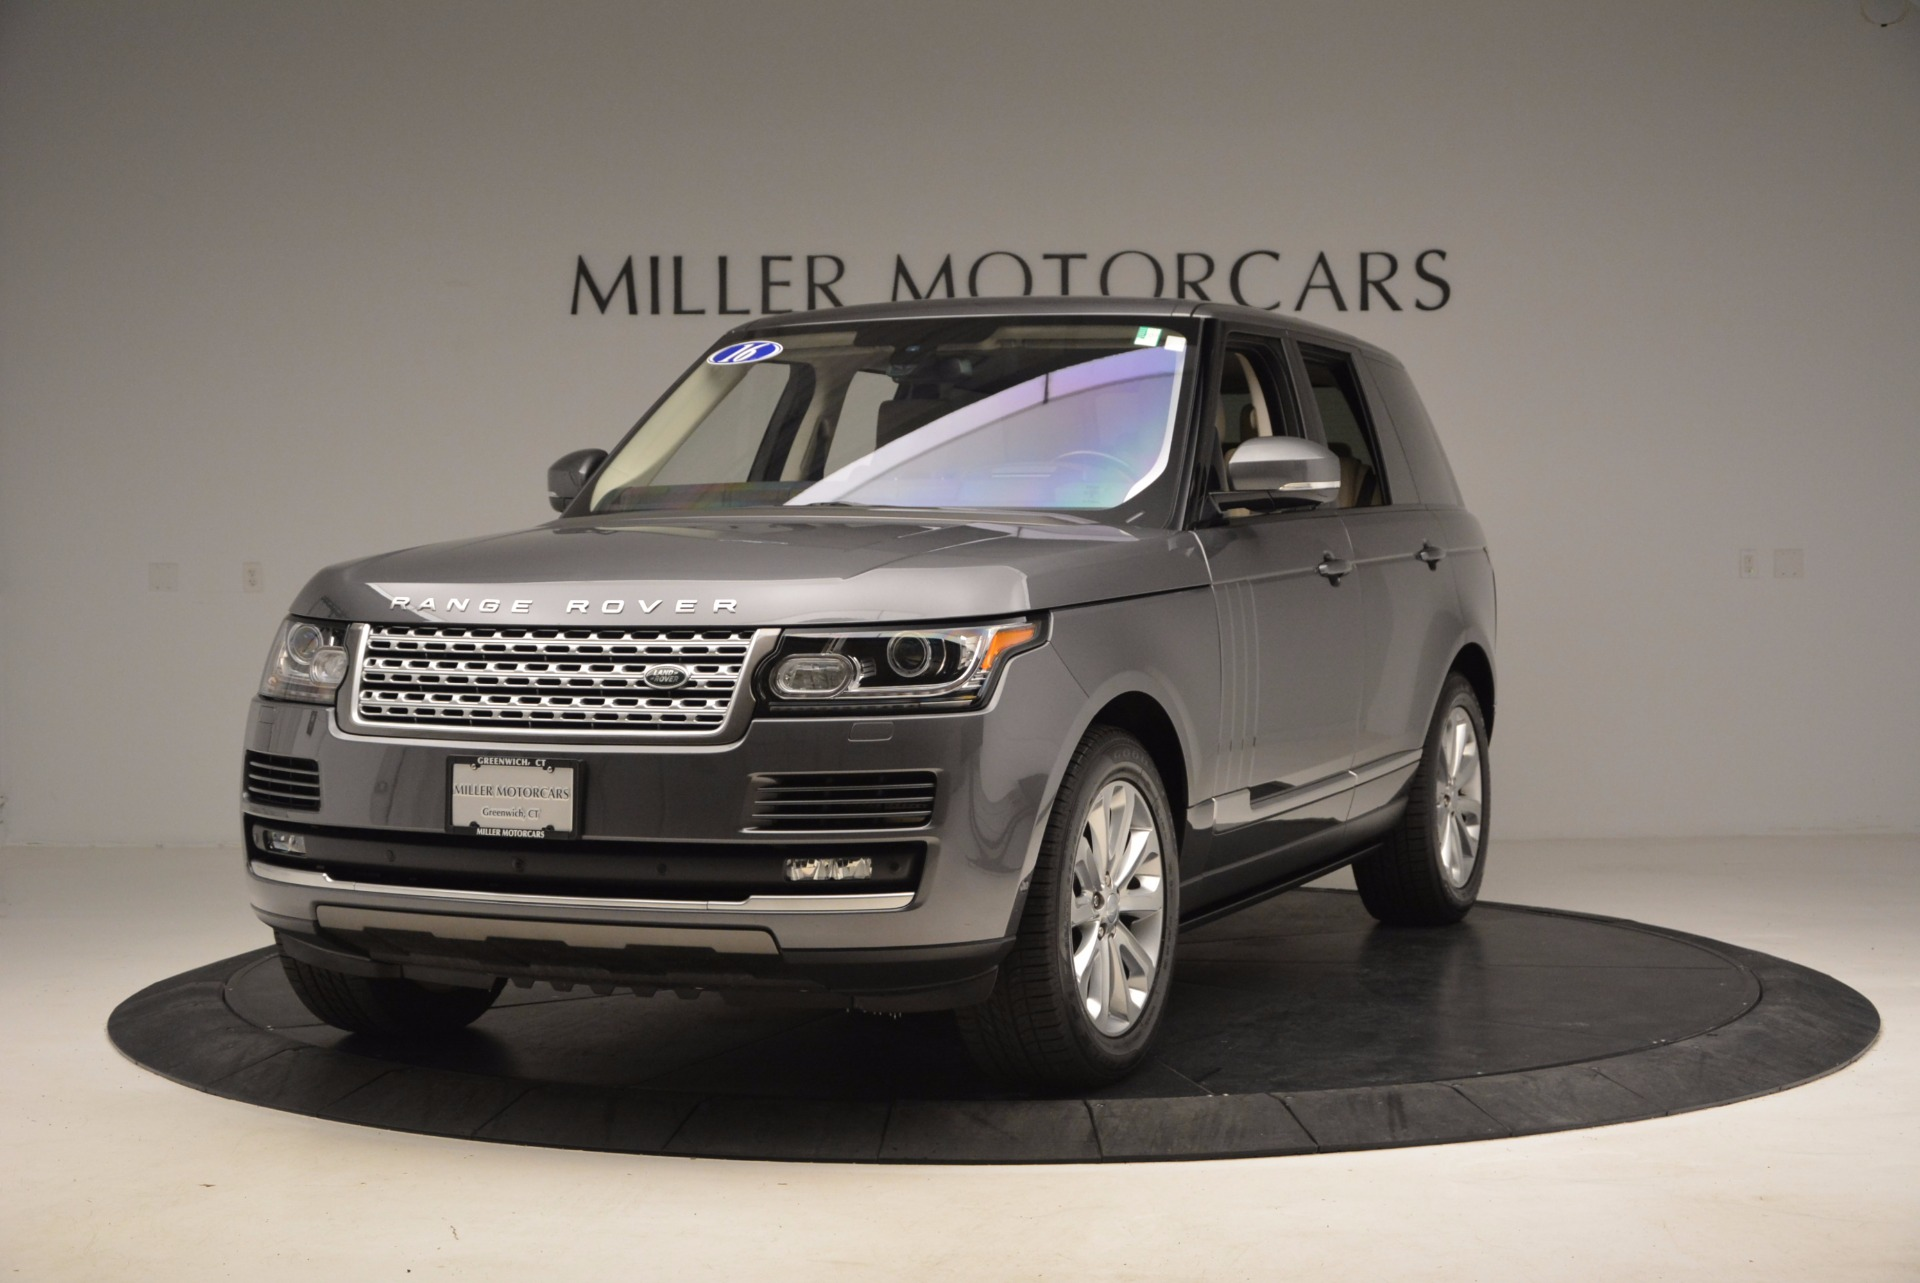 Used 2016 Land Rover Range Rover HSE TD6 for sale Sold at Bentley Greenwich in Greenwich CT 06830 1